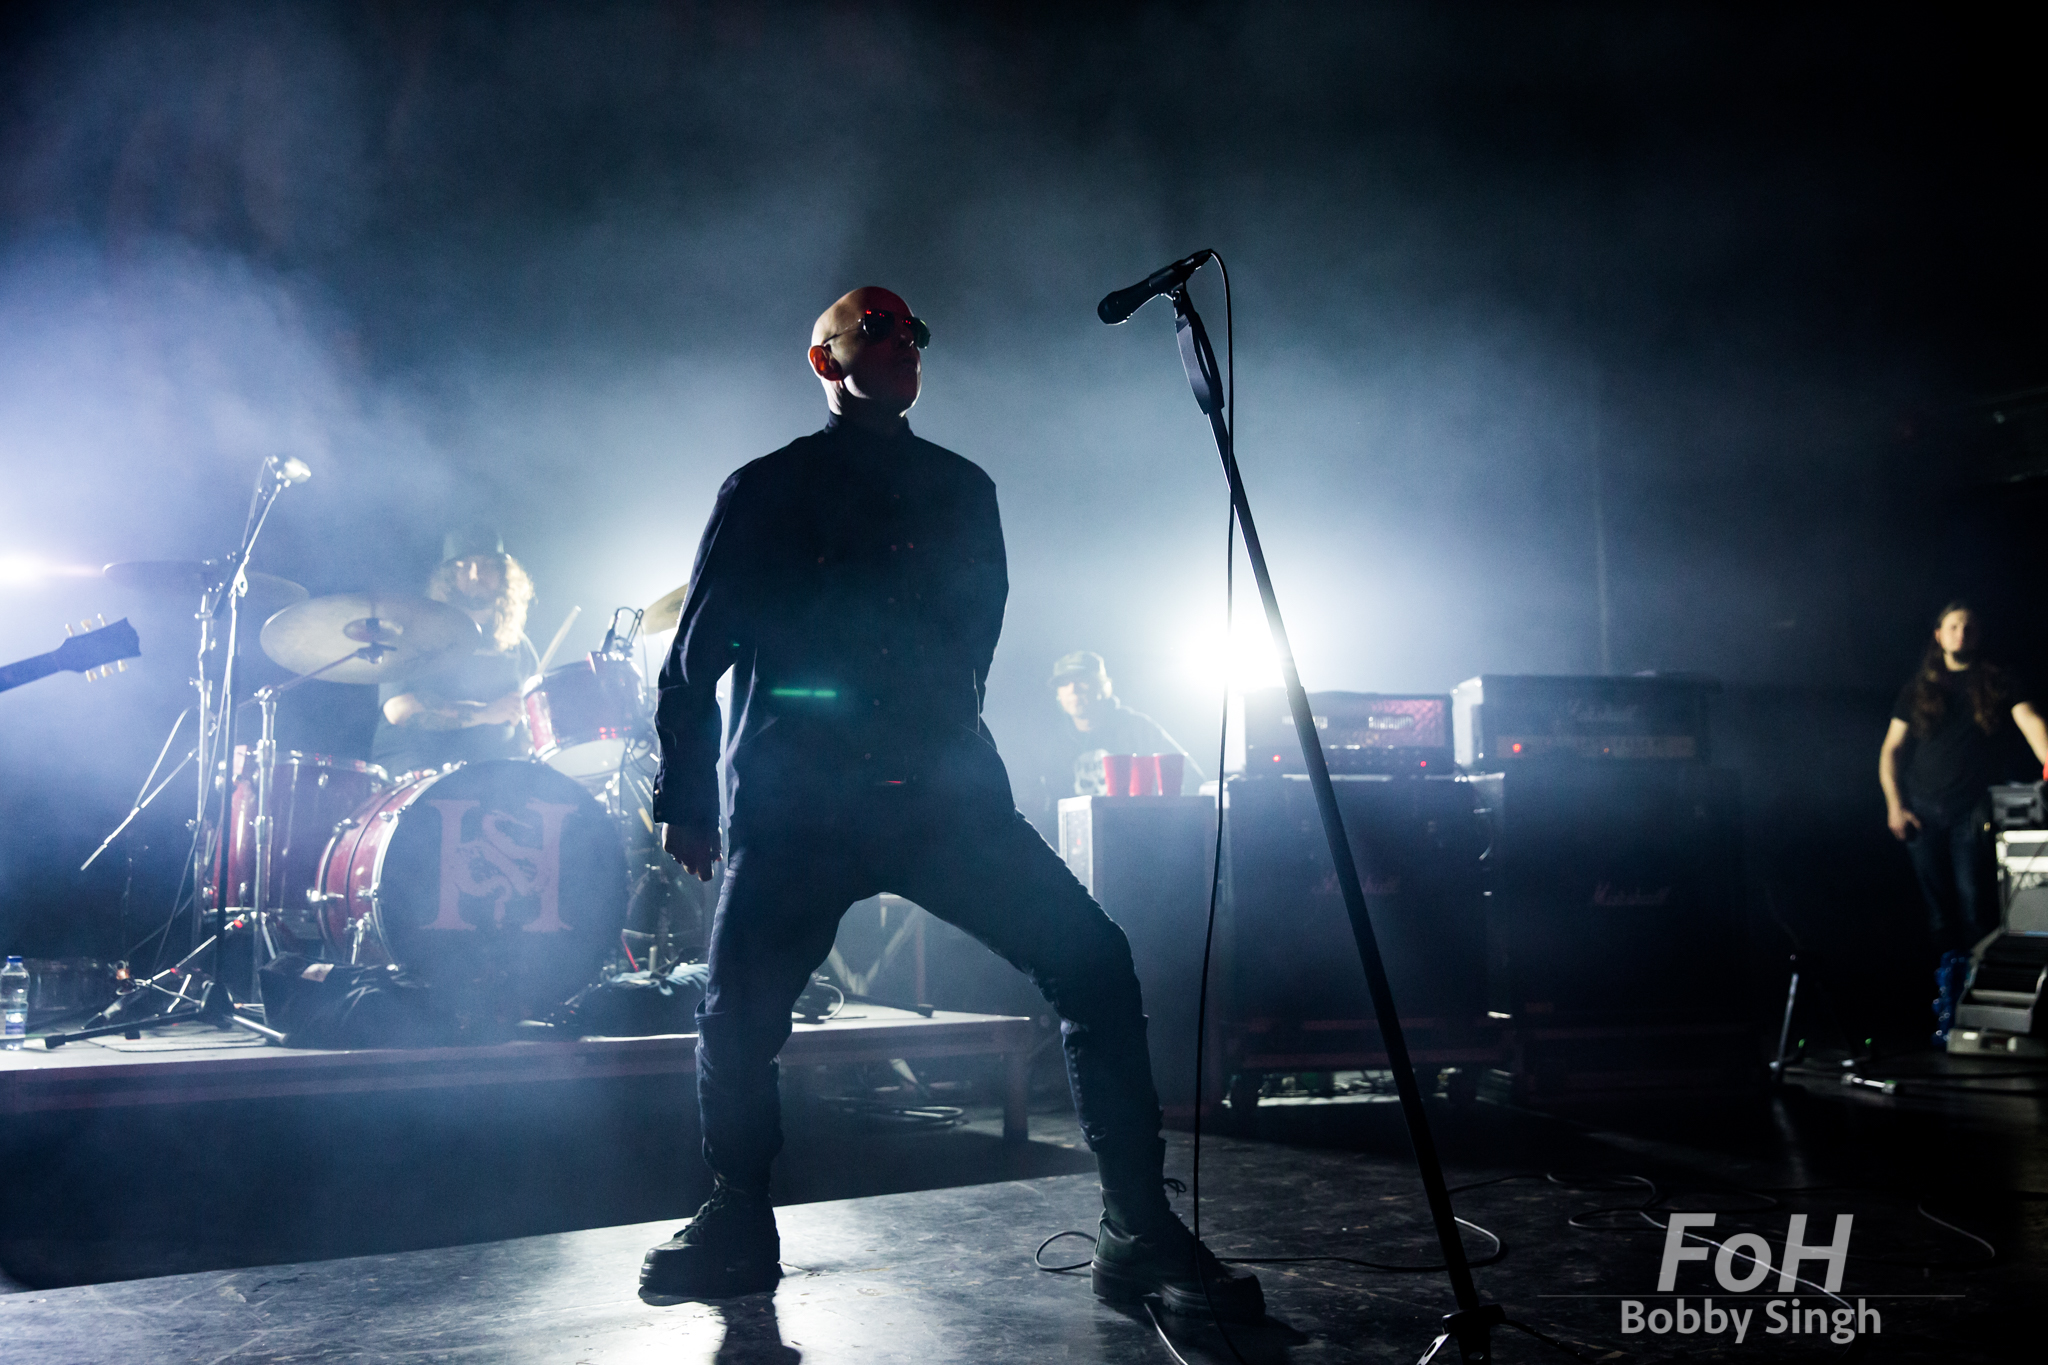 The Headstones. Toronto. Dec 22nd 2018. Photo by Bobby Singh/ @fohphoto